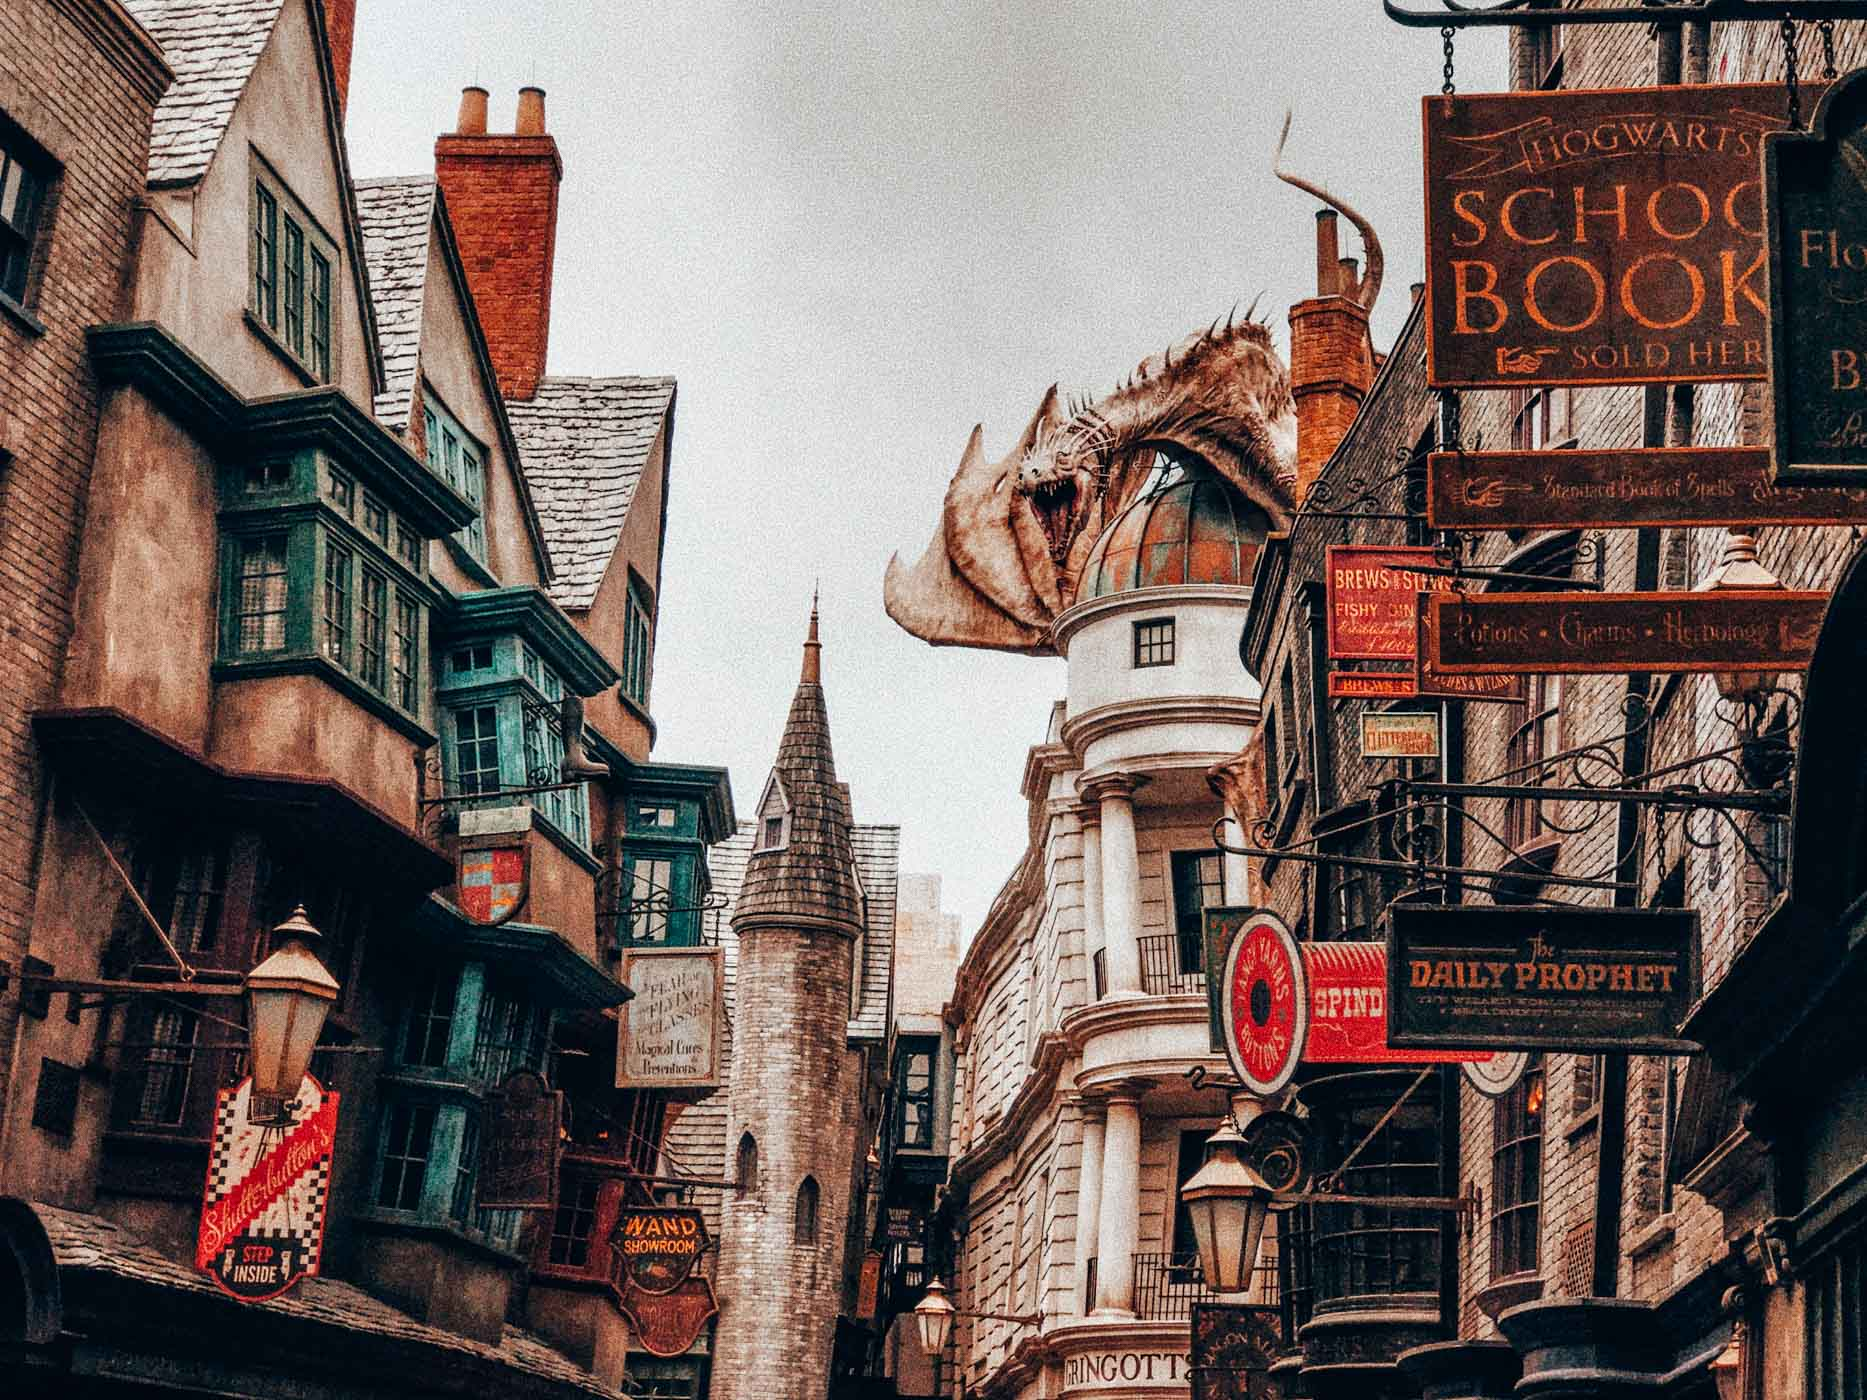 The Best Things to Do in Orlando for the young and old including a visit to Universal studios.